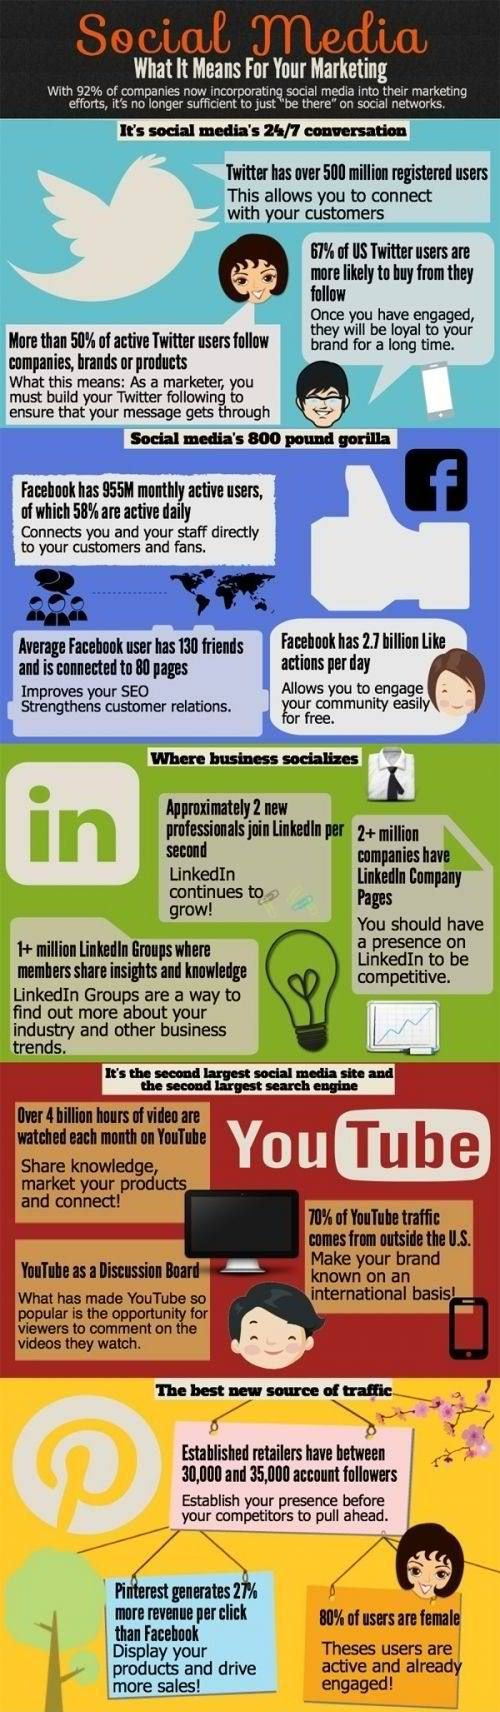 Social Media Marketing- What Is Means